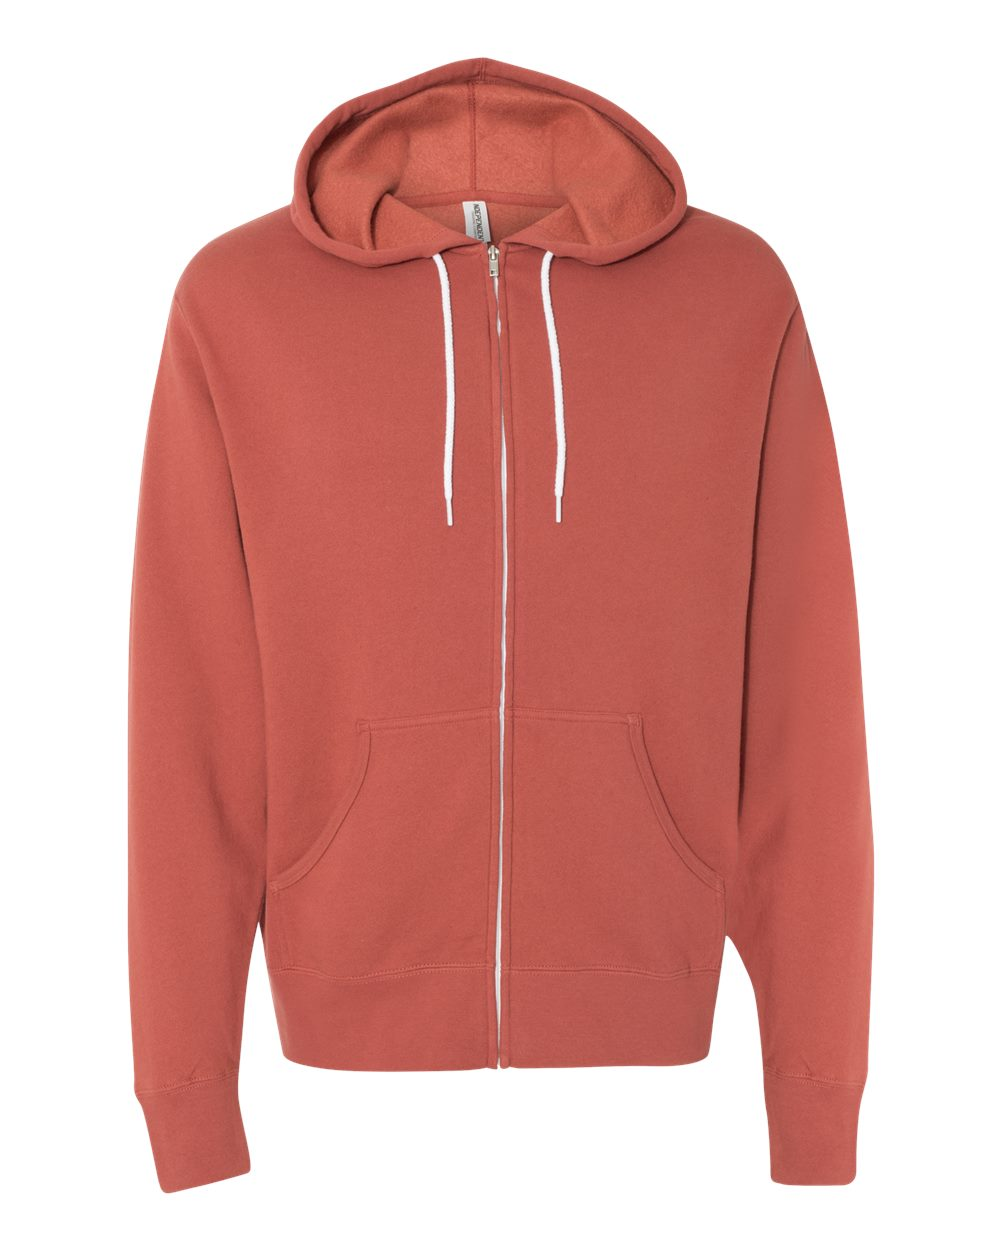 Rust Hooded Full Zip